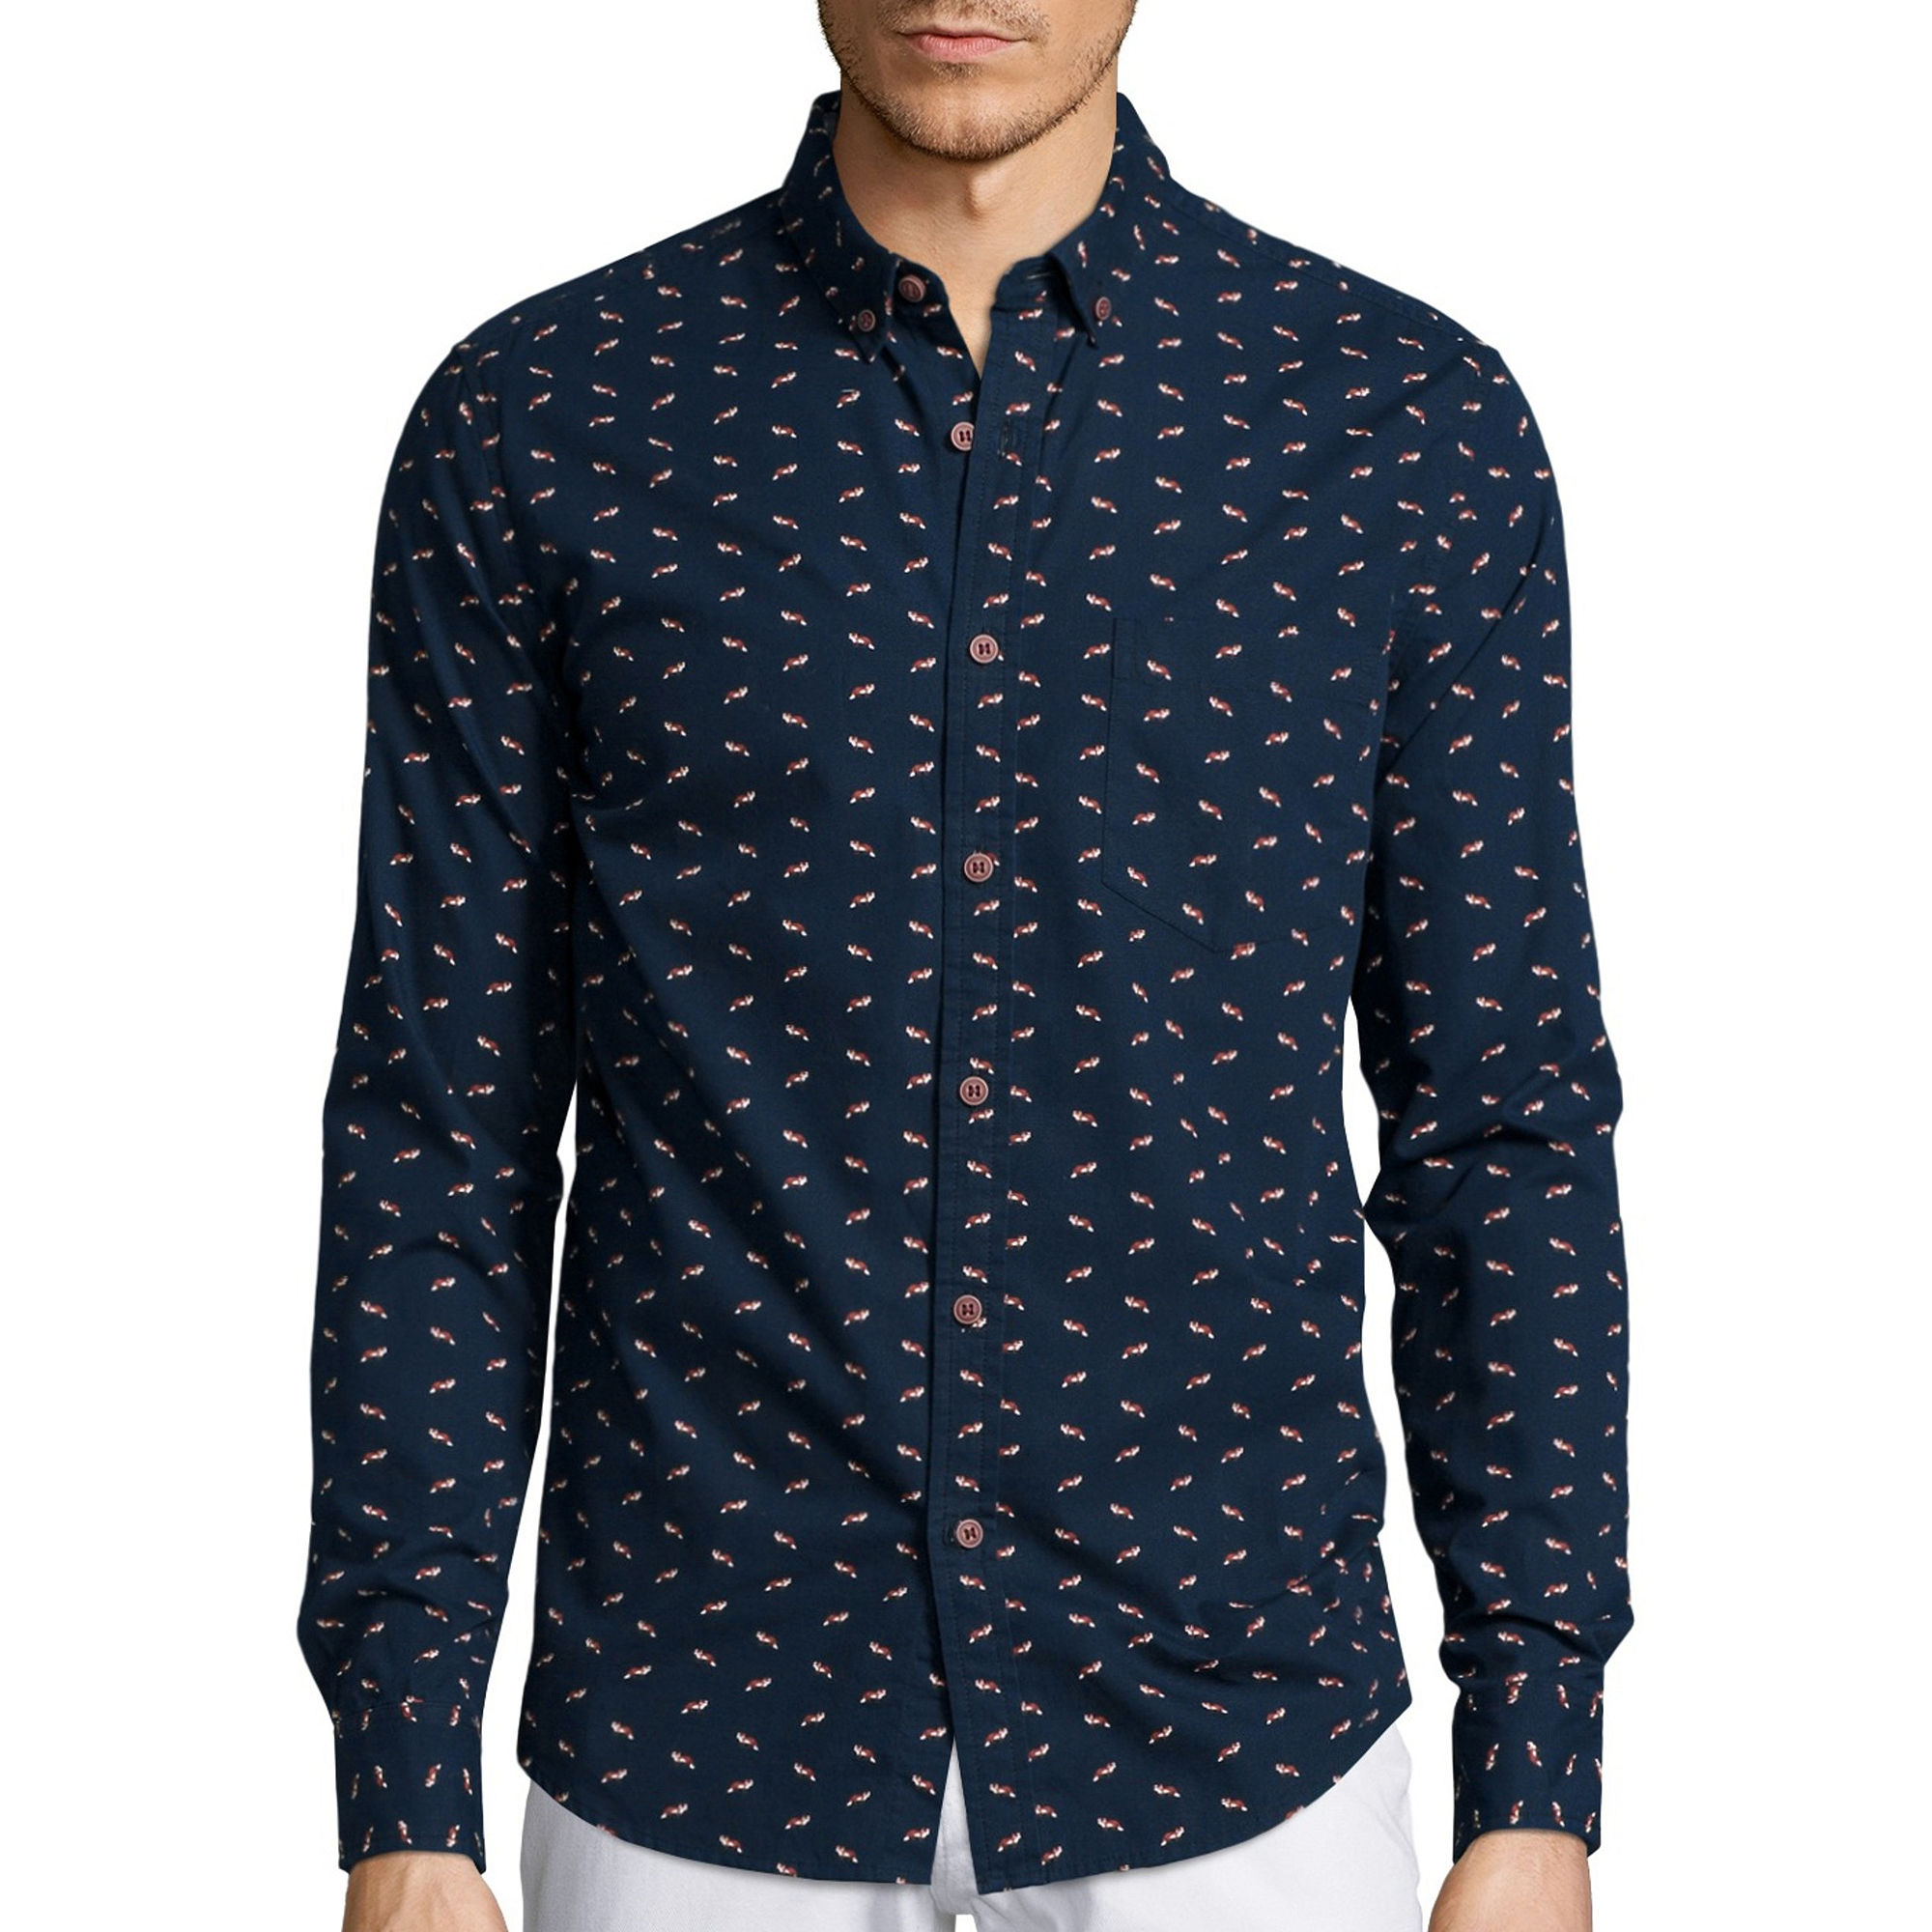 UPC 602140183881 - Young Mens Denim & Flower Fox Print Shirt S ...